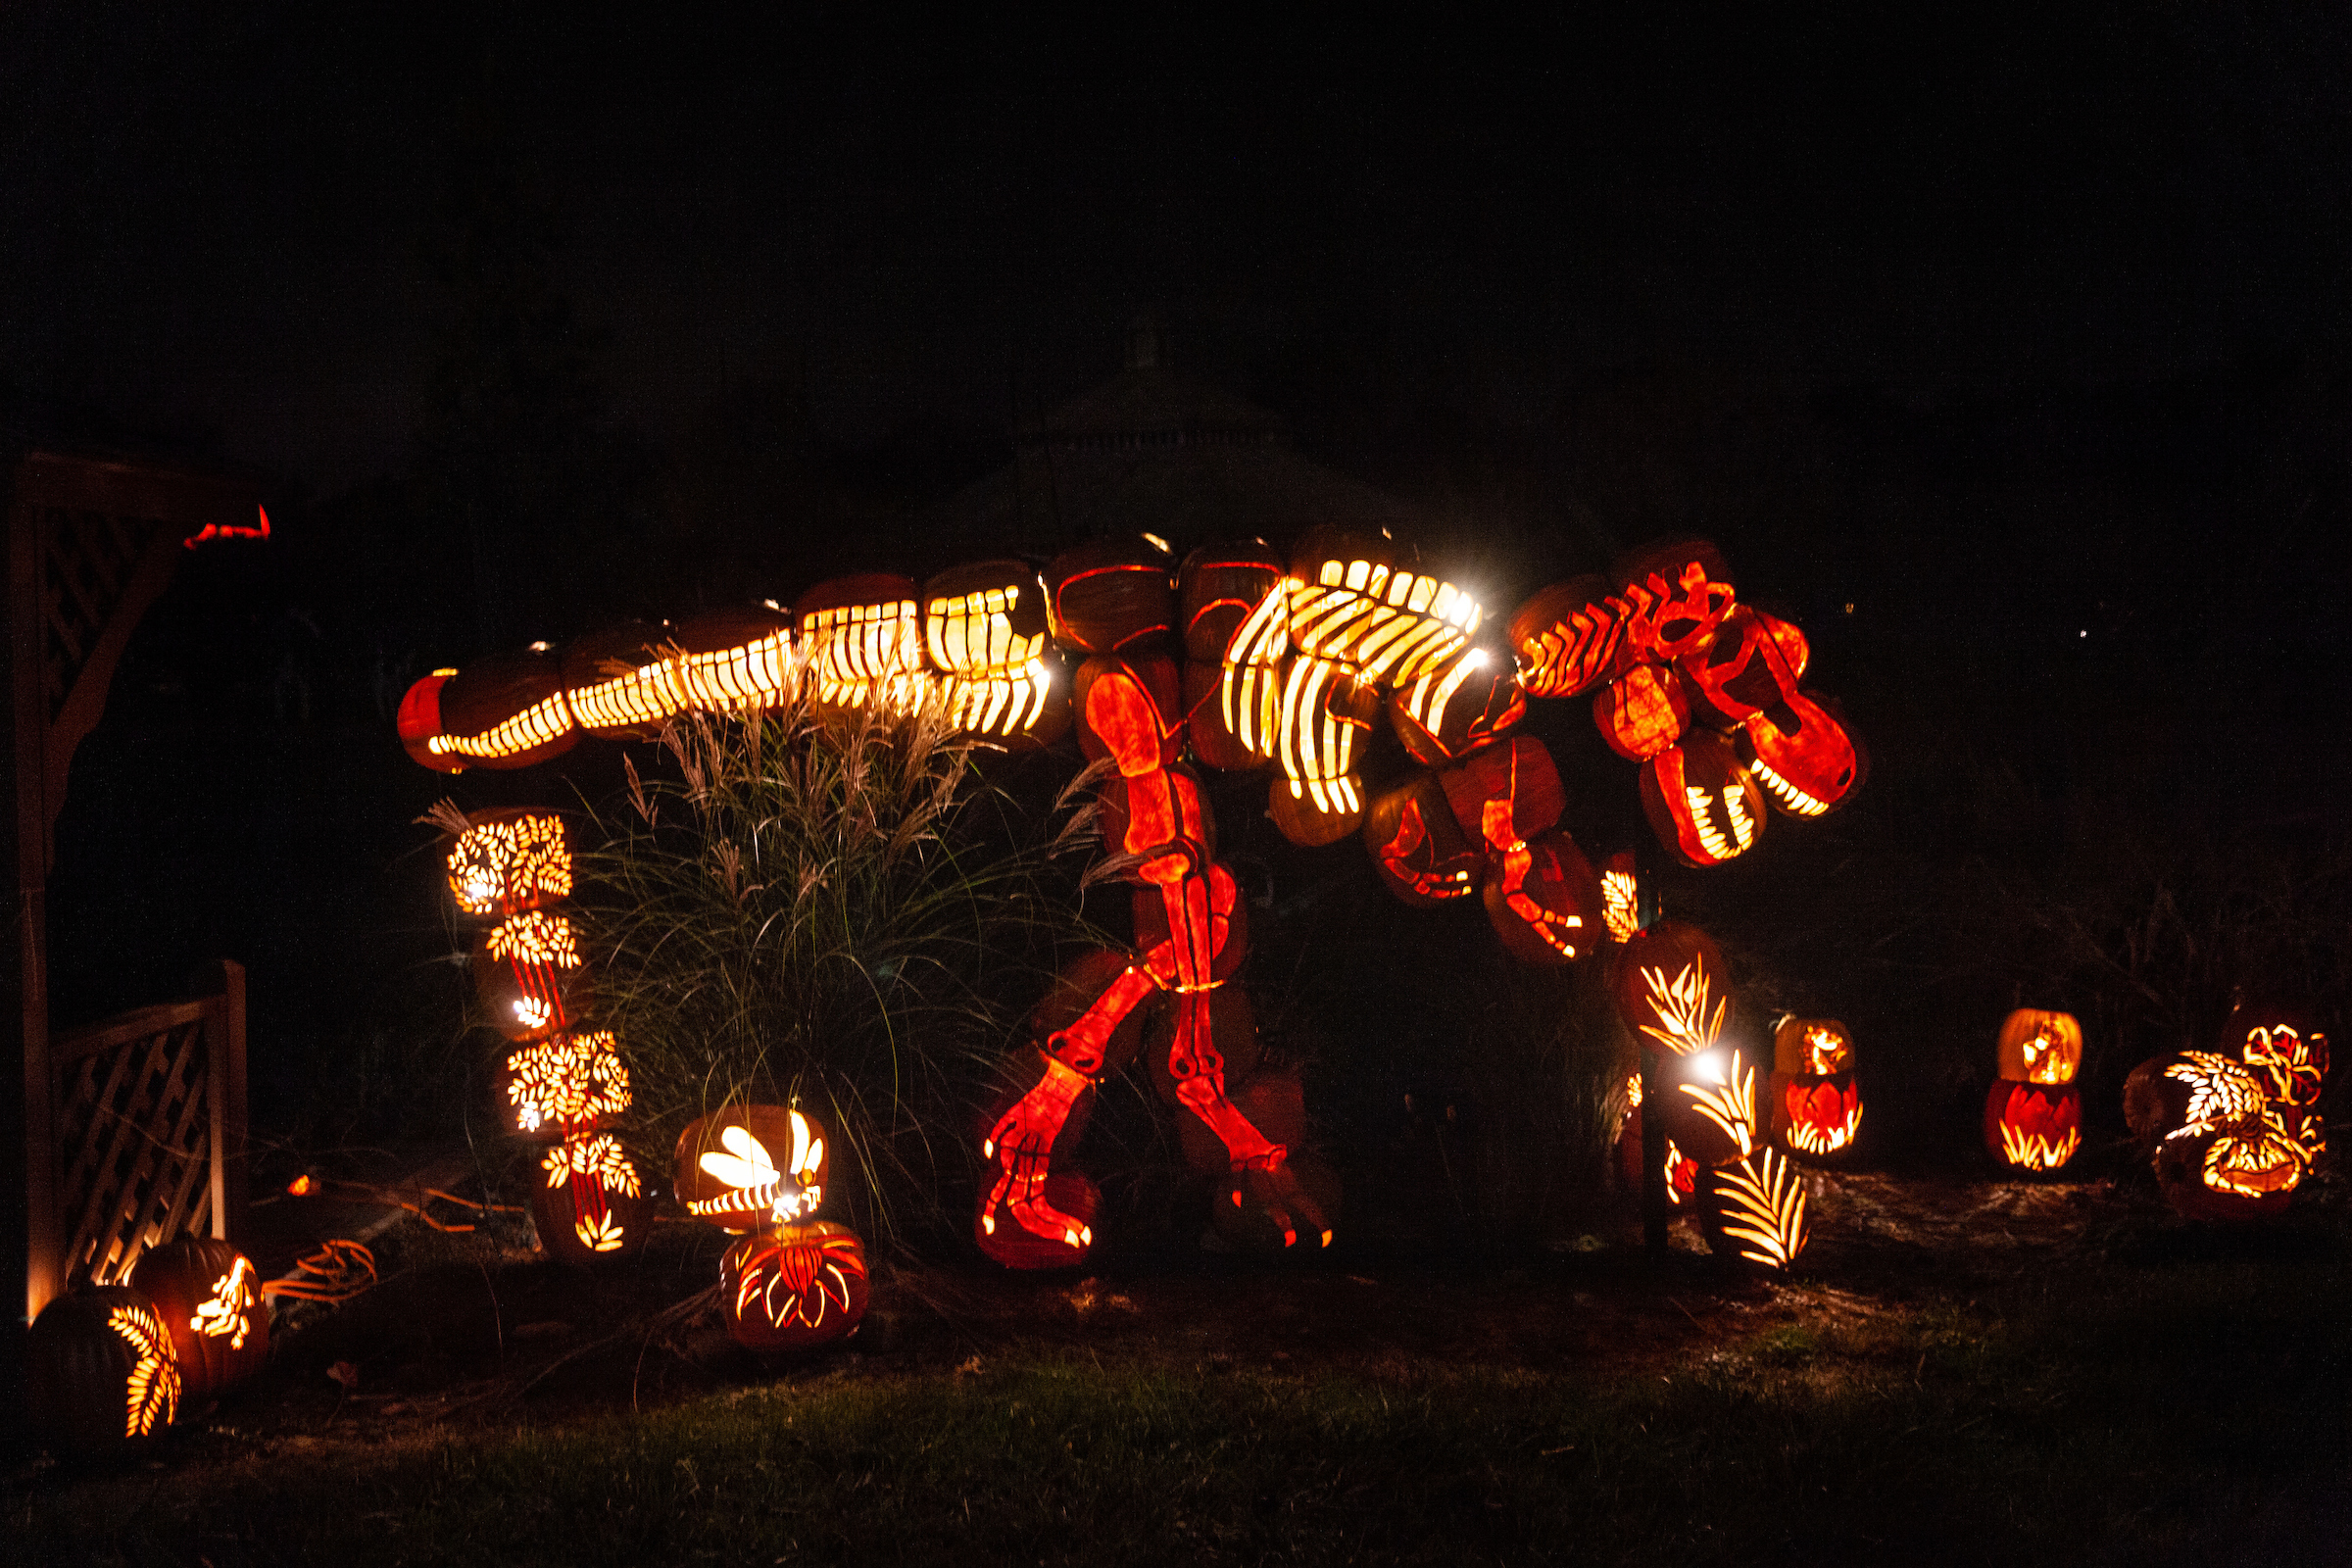 Add the Brite Nites pumpkin display to your fall to-do list